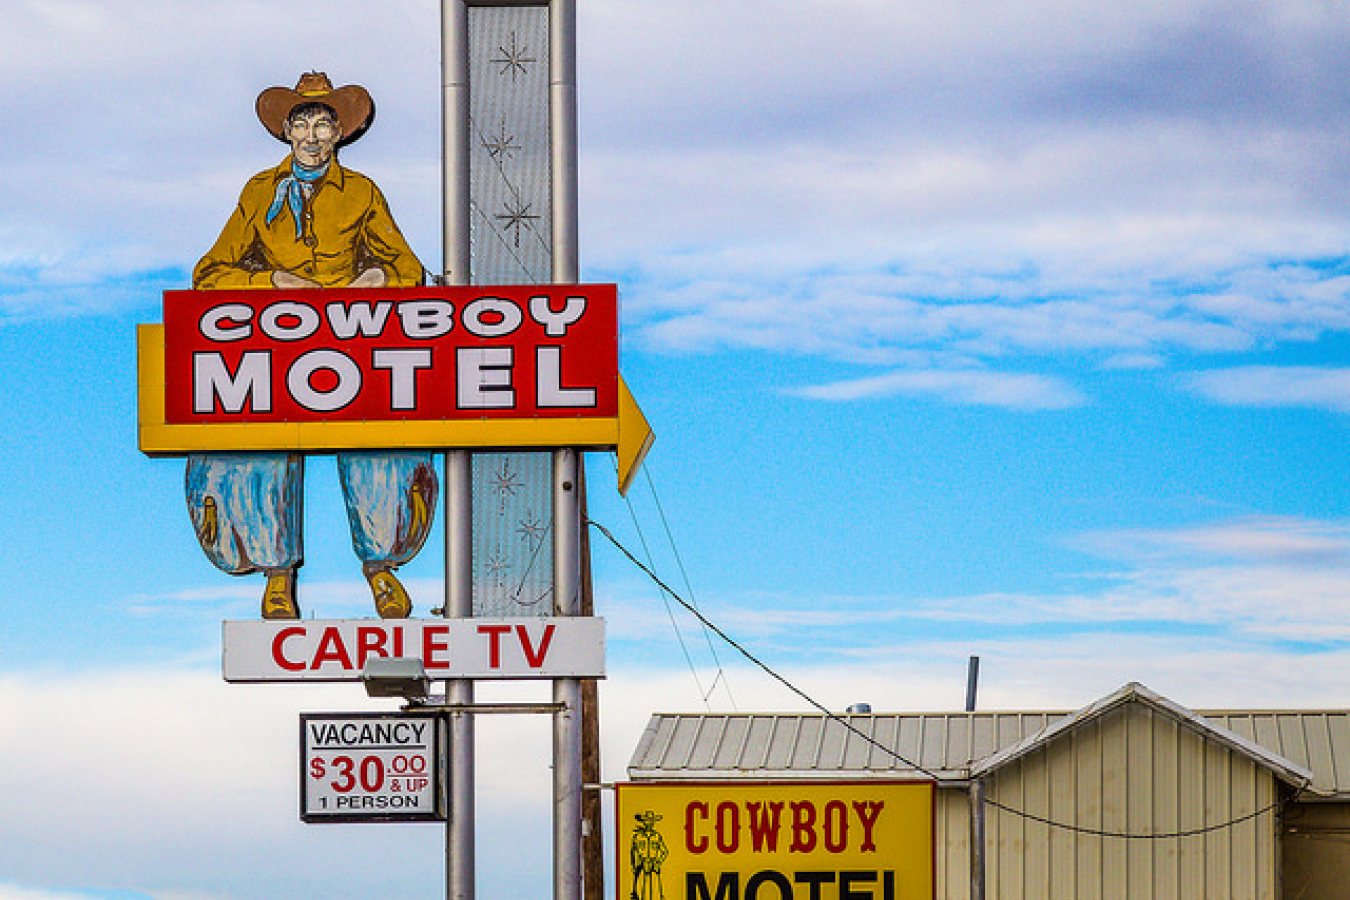 Cowboy Motel, U.S. Route 60 Amarillo, TX - A type of business started by E2 investors